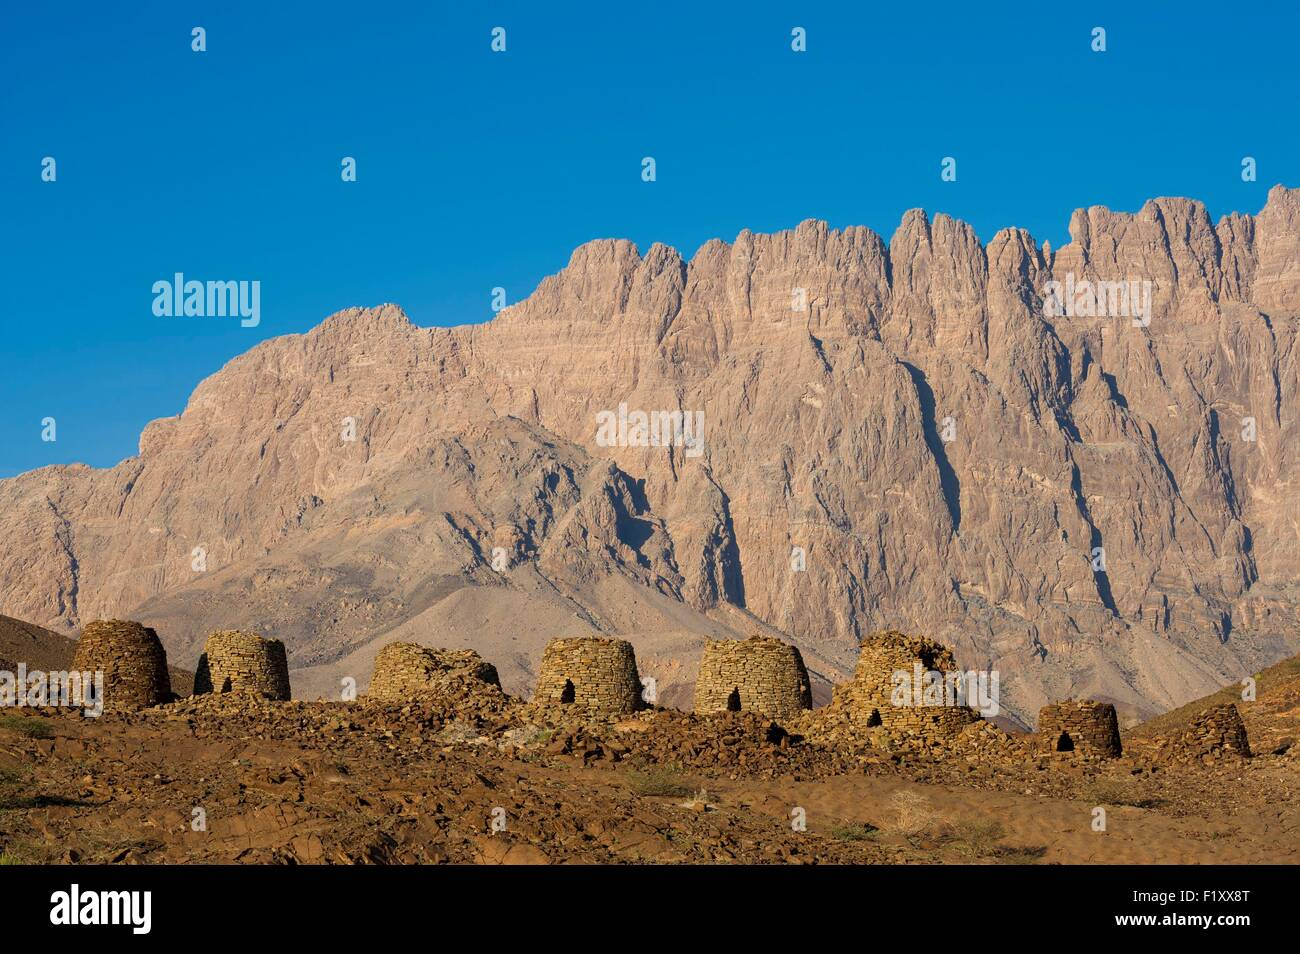 Oman, Ad-Dhakhiliyah, El Ayn, bronze age necropolis, 3000 before J.C., in front of Djebel Misht, listed as World - Stock Image